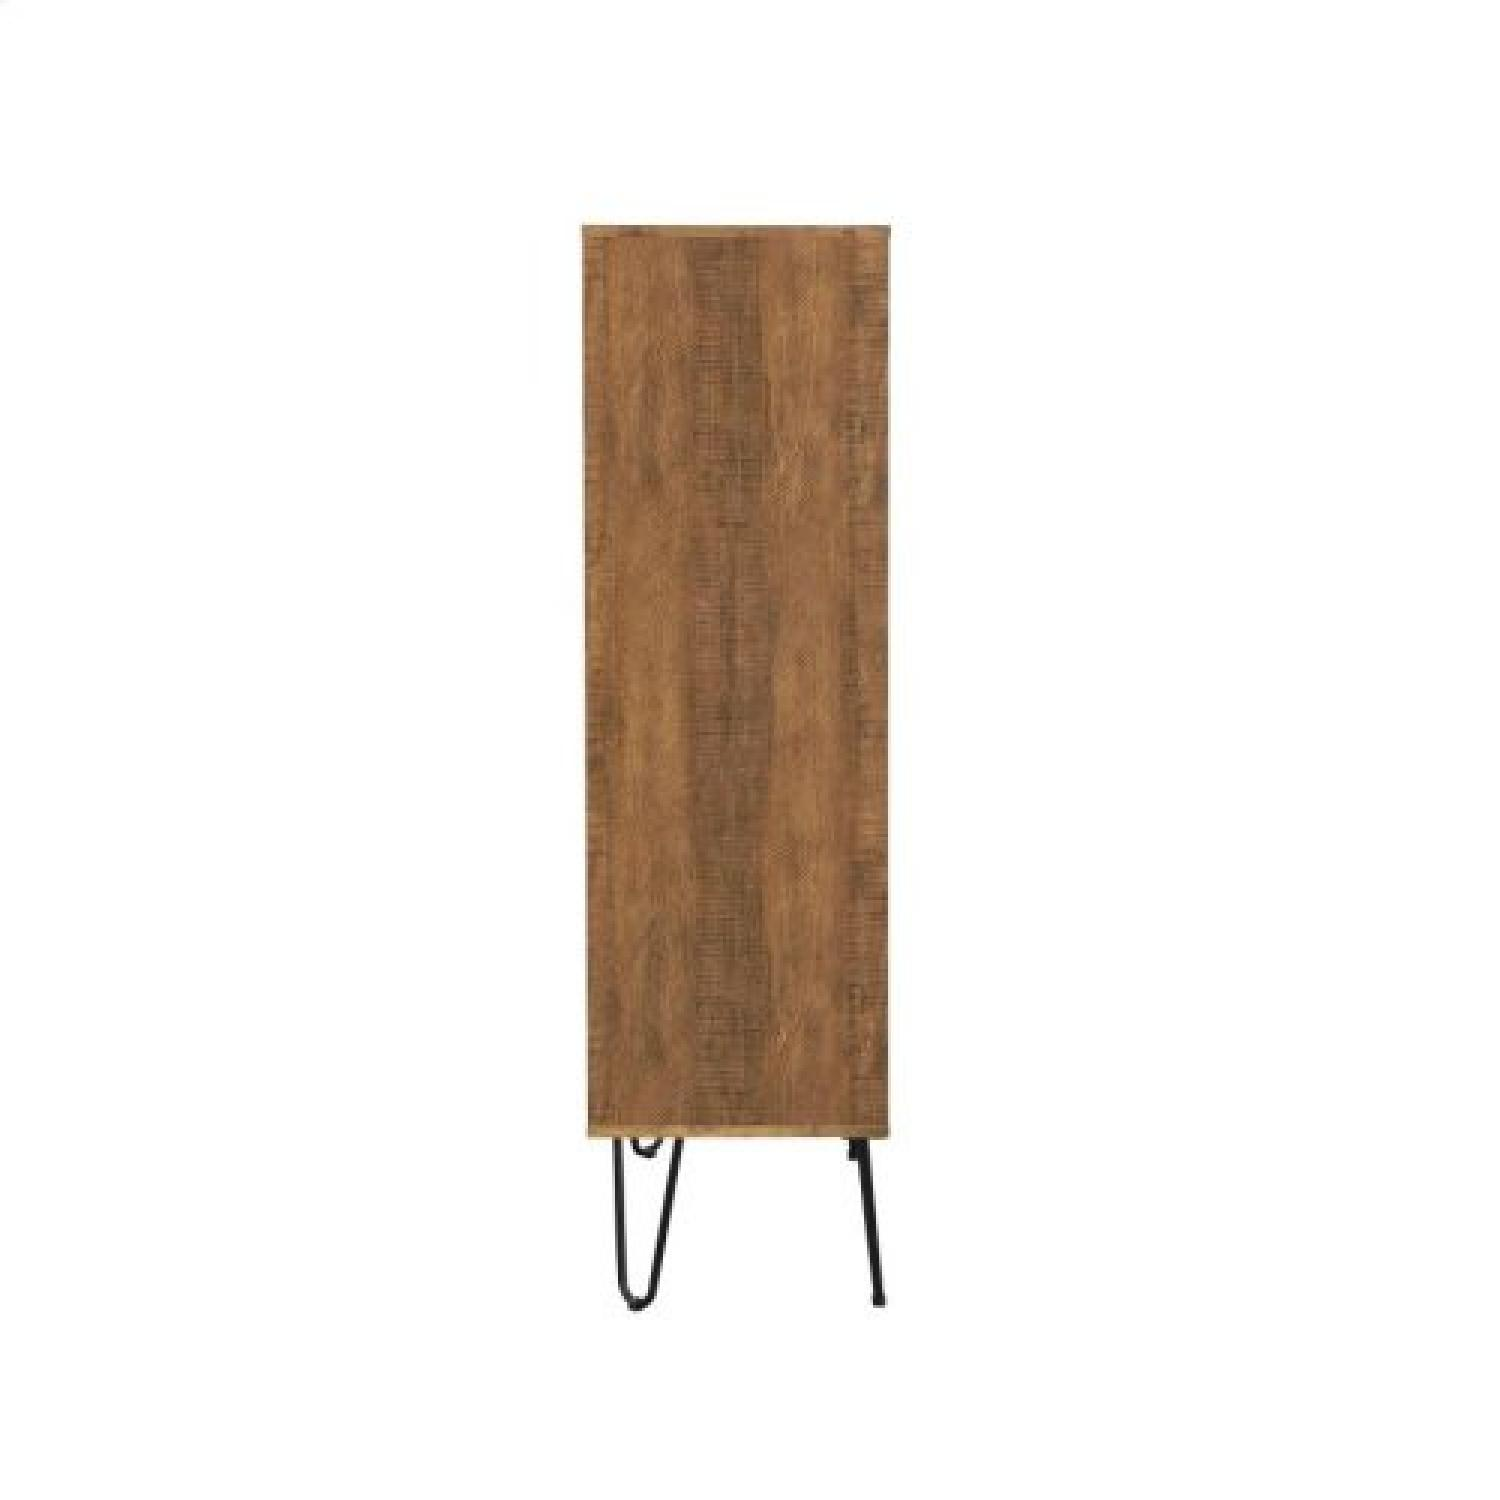 Rustic Amber Bookcase w/ Hair Pin Legs - image-1